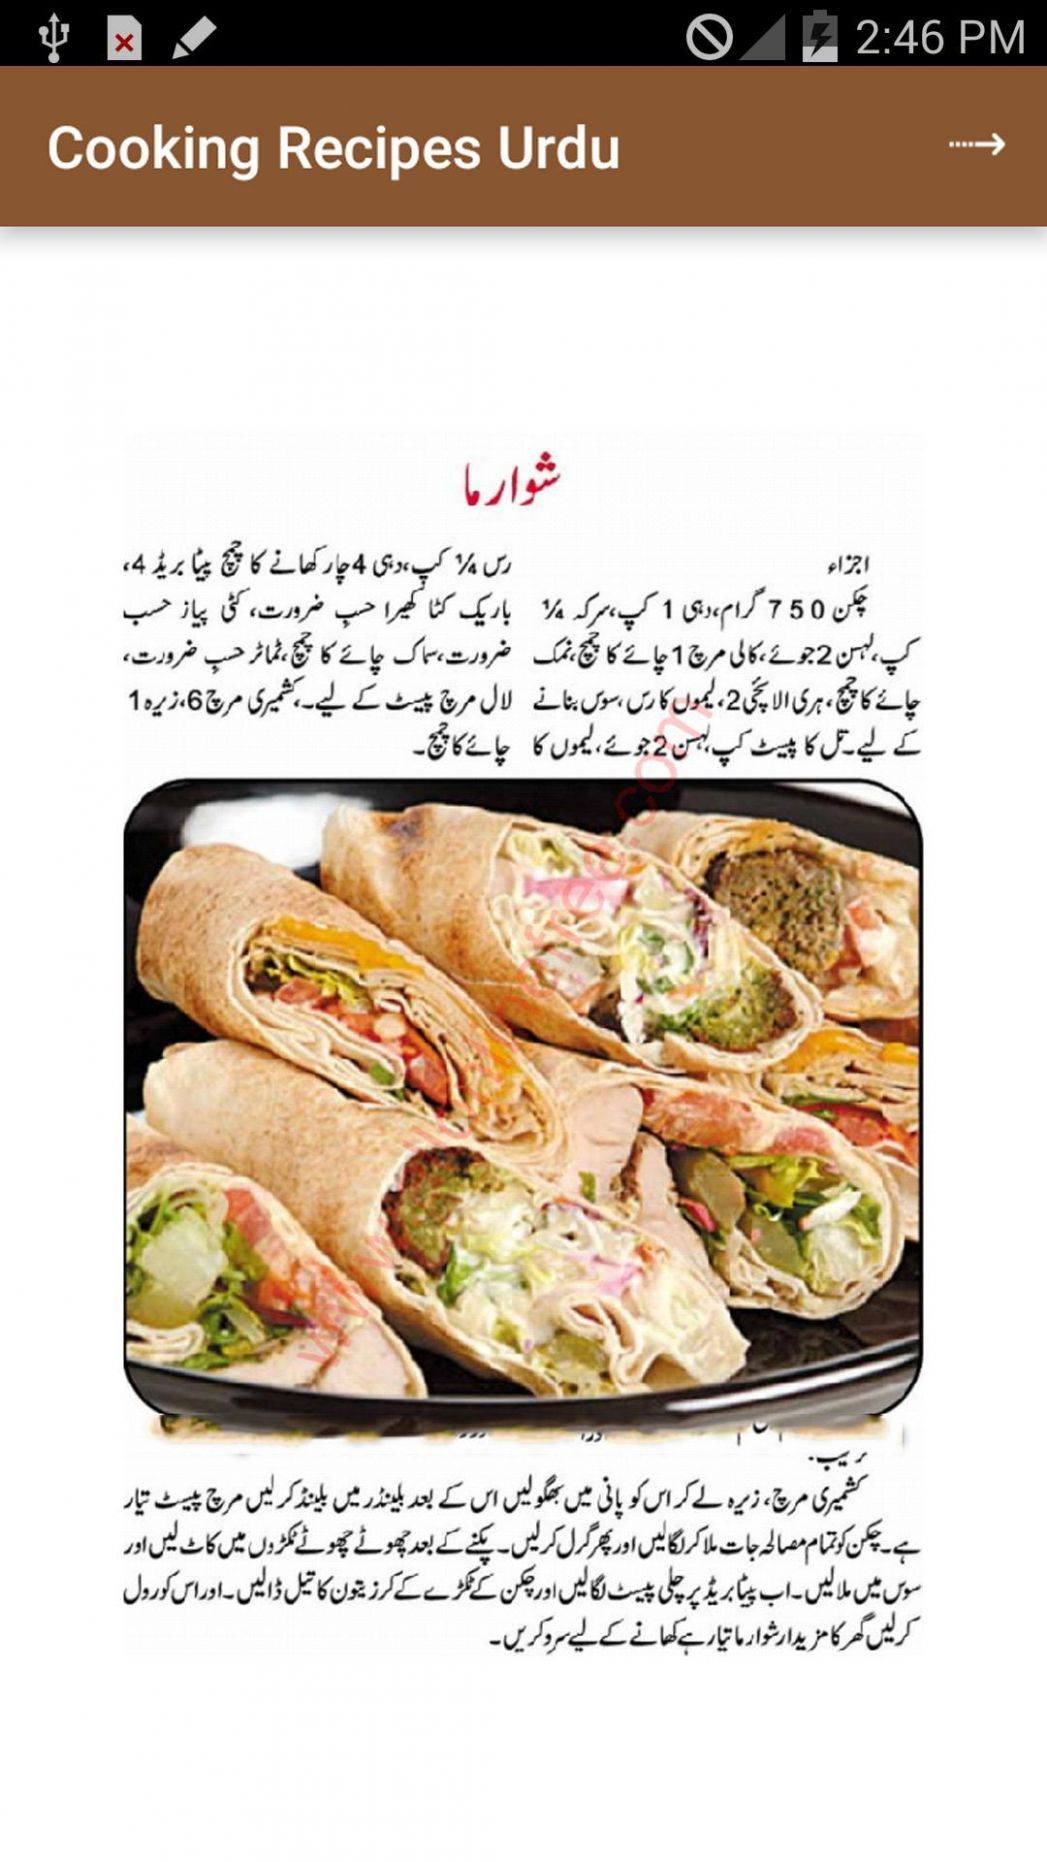 Cooking Recipes in Urdu for Android - APK Download - Urdu Recipes New